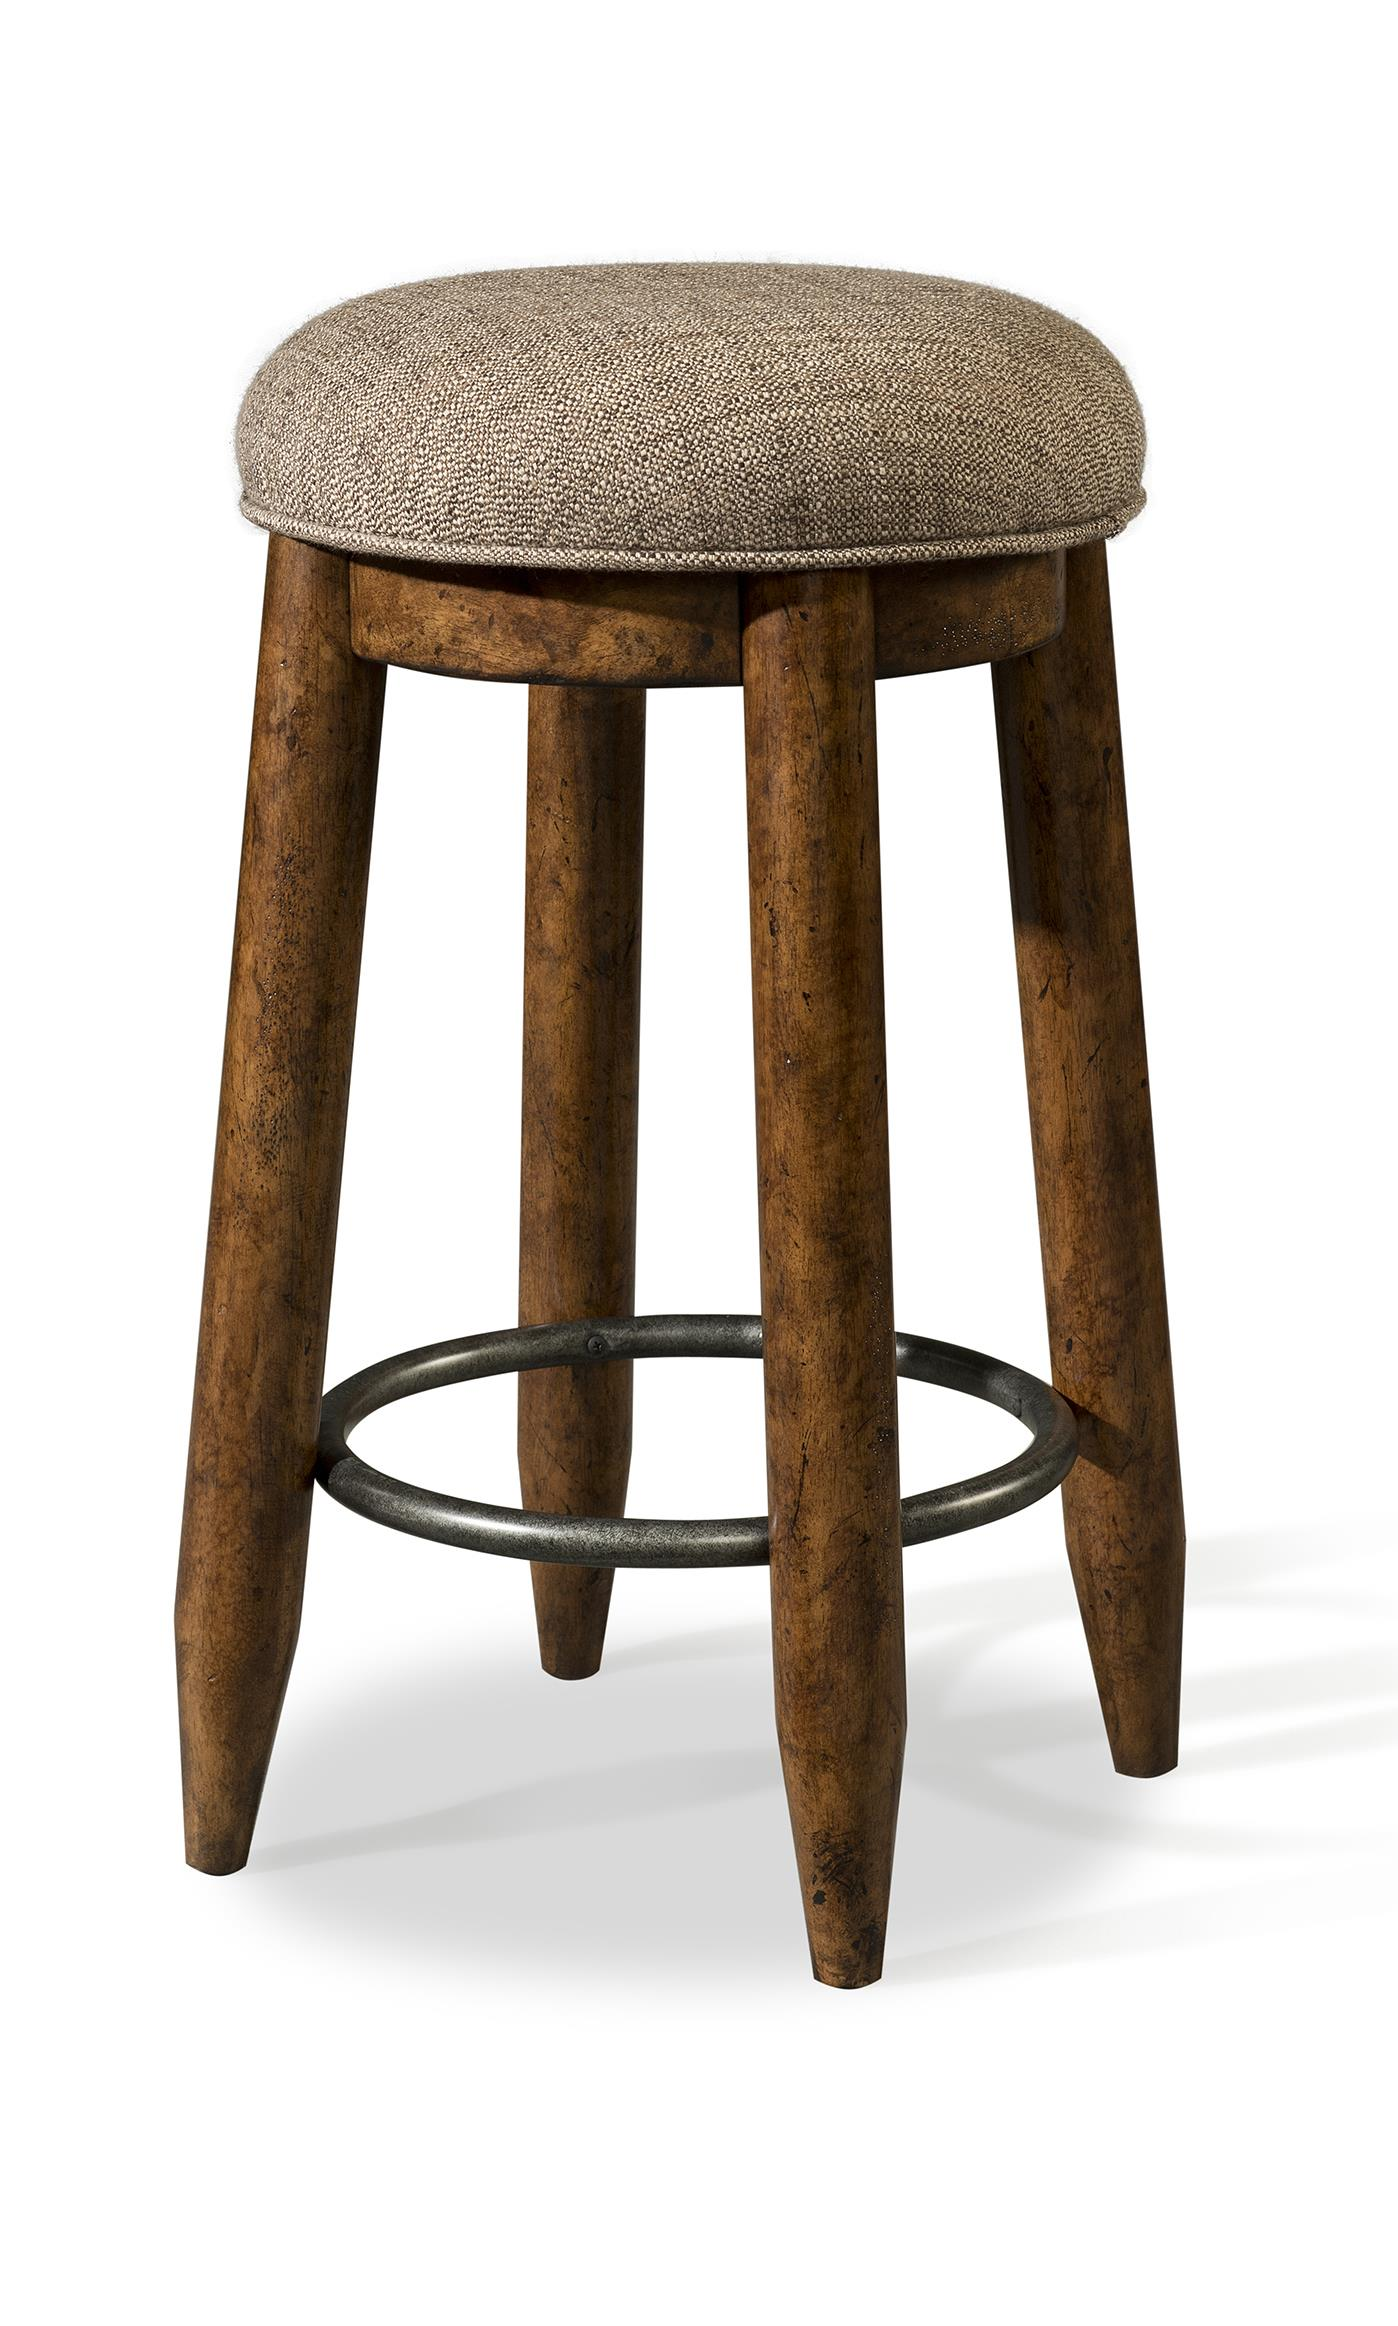 Easton Collection Farmhouse Stool - Item Number: 436-920 STOOL